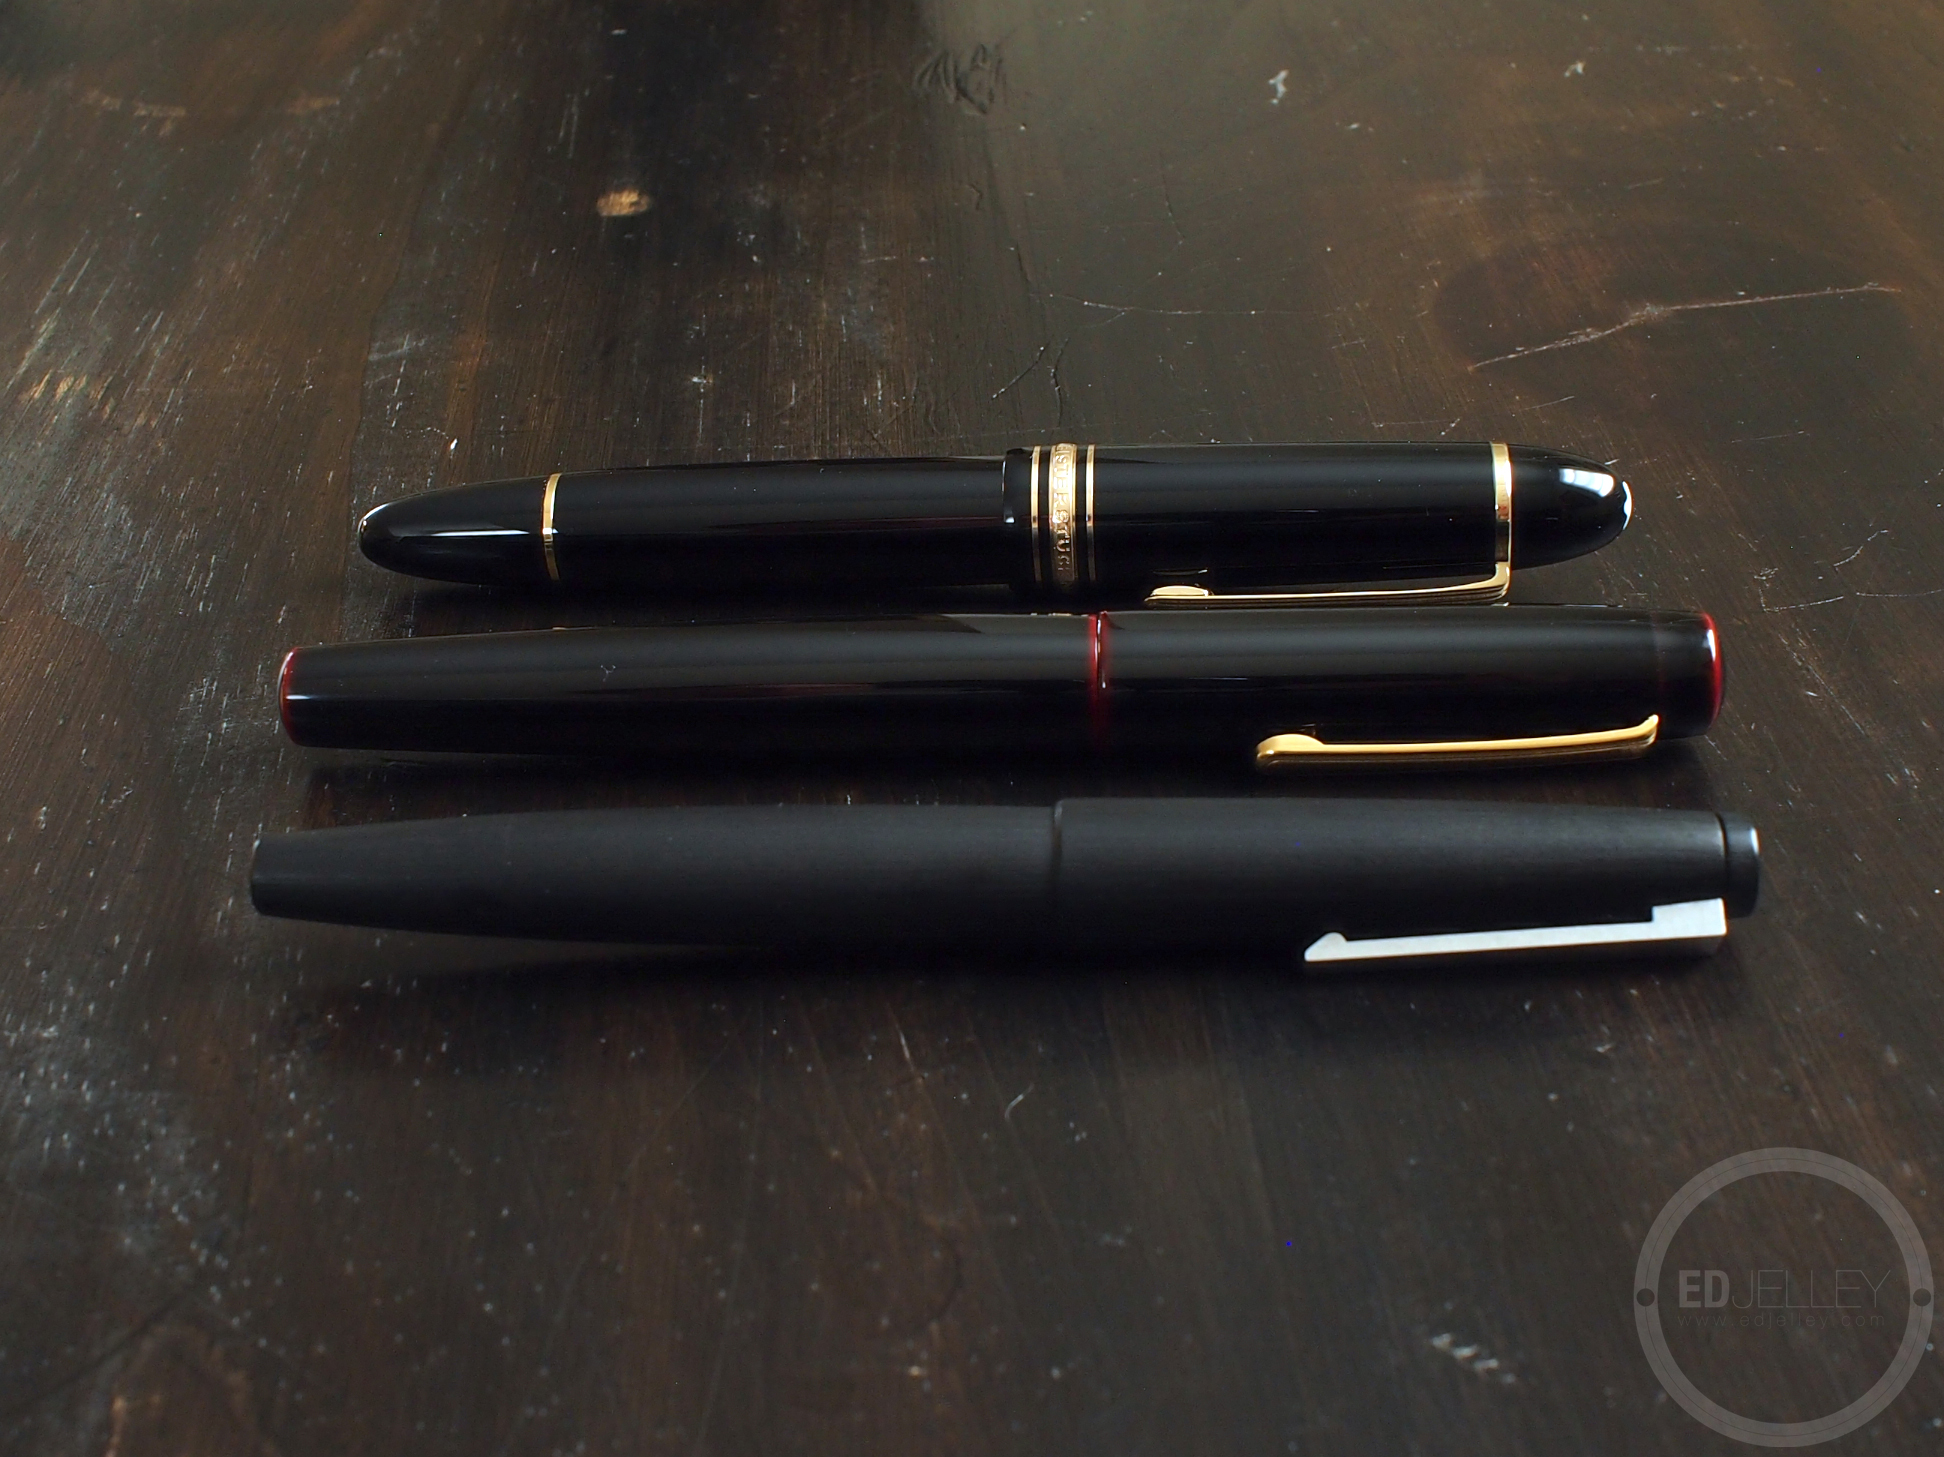 Calligraphy Pens B&m Buying A Grail Pen A How To Guide For Purchasing Your Dream